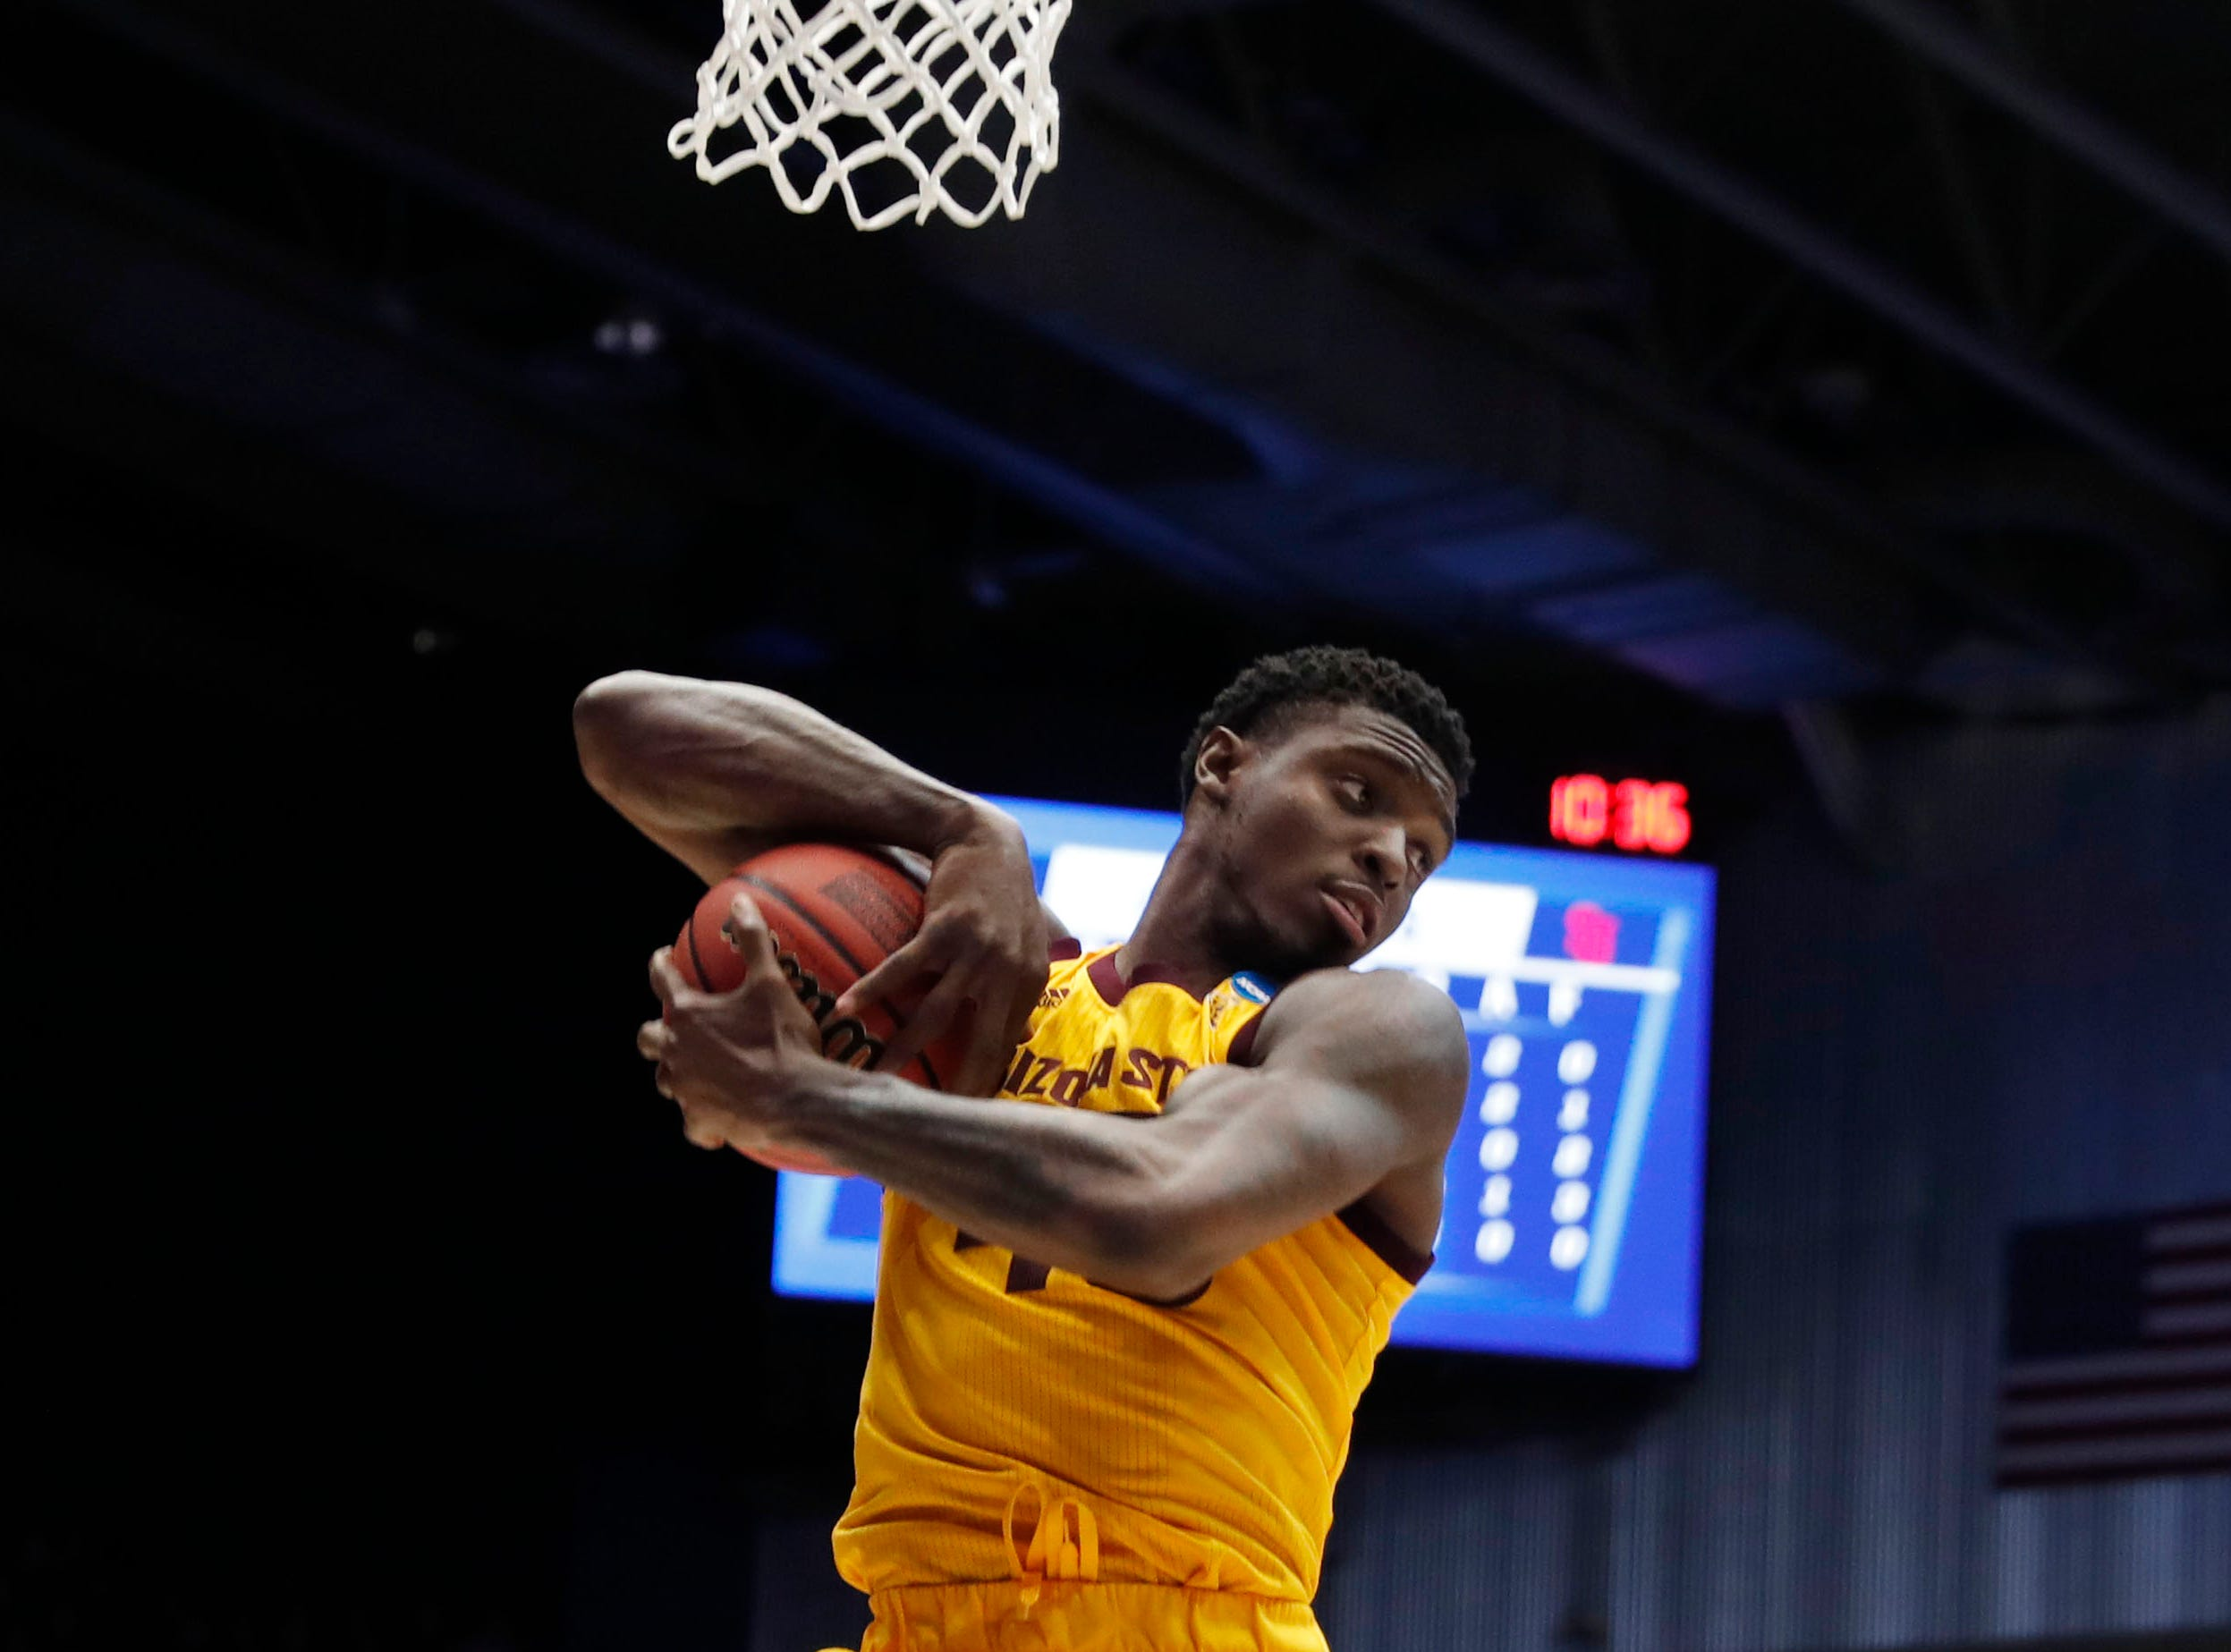 Mar 20, 2019; Dayton, OH, USA; Arizona State Sun Devils forward Zylan Cheatham (45) gets a rebound in the second half against the St. John's Red Storm in the First Four of the 2019 NCAA Tournament at Dayton Arena. Mandatory Credit: Brian Spurlock -USA TODAY Sports